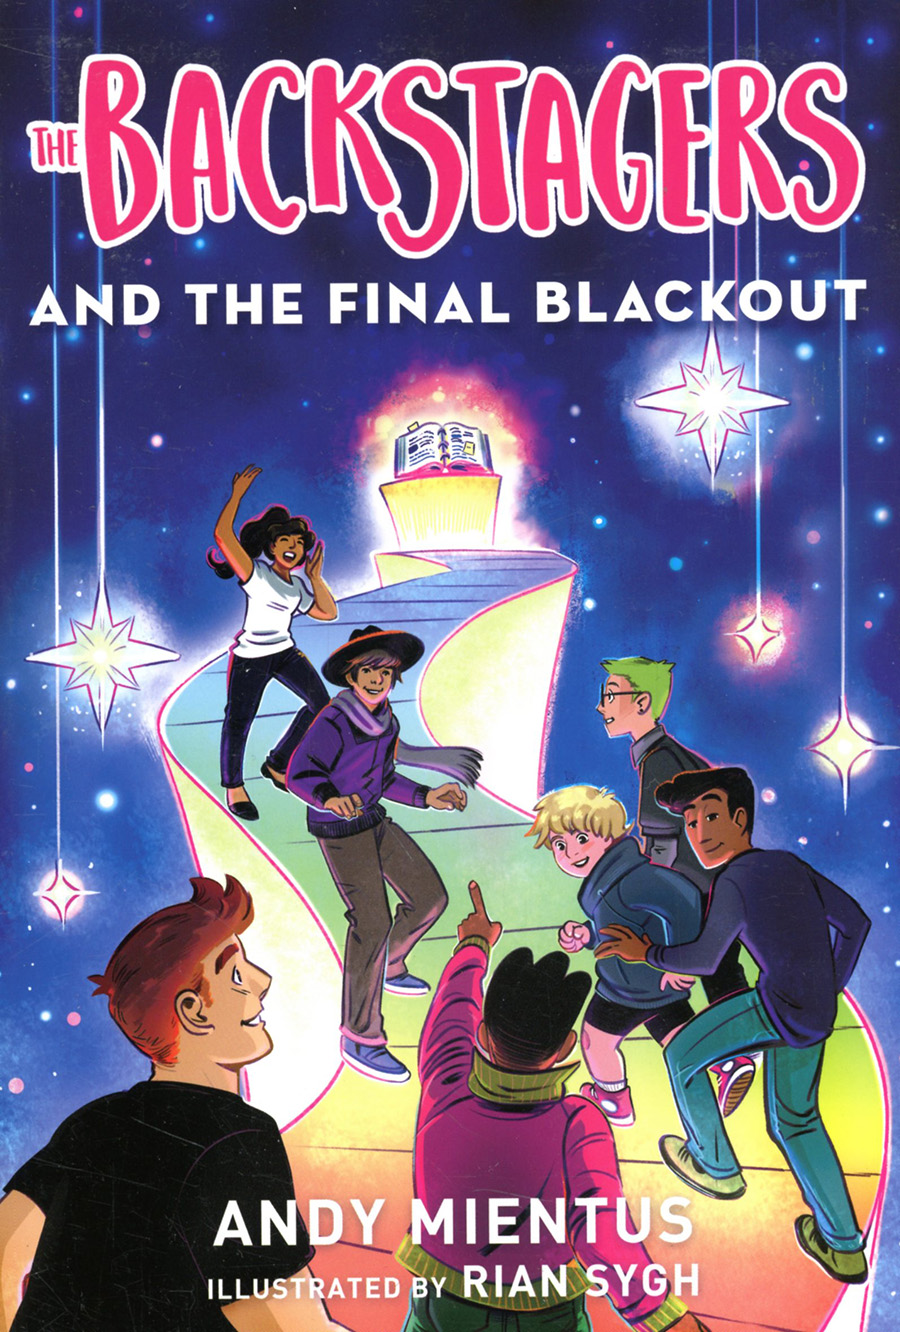 Backstagers Illustrated Novel Vol 3 Backstagers And The Final Blackout TP